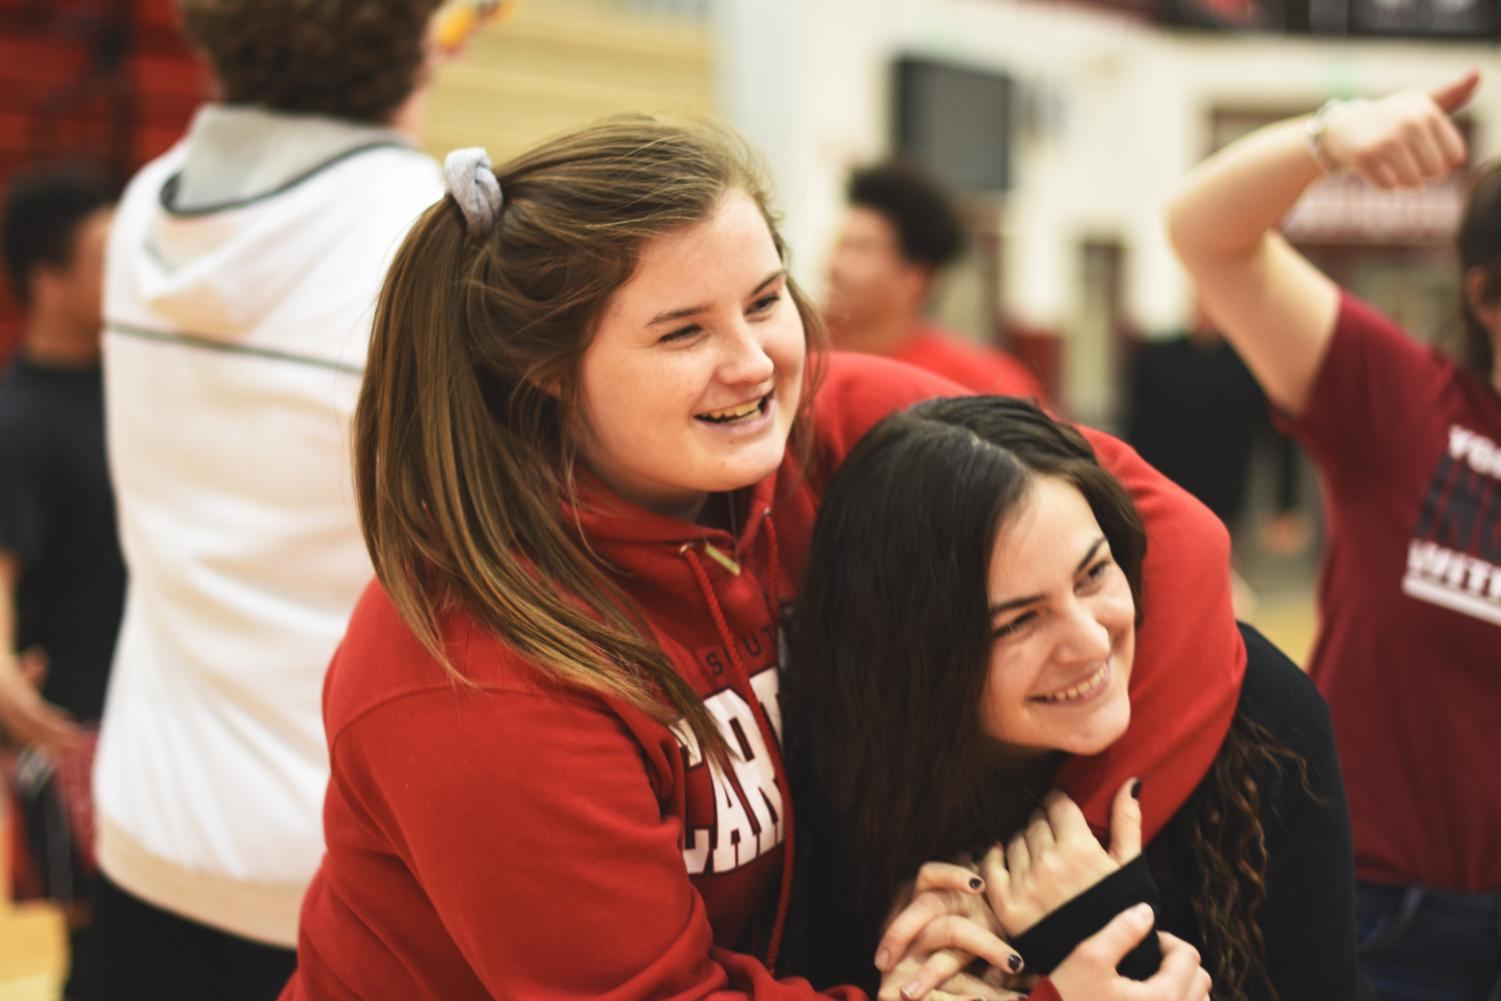 Senior Emily Chambers and sophomore Grace Campbell dance together to a song being played over the speakers during the snowcoming spectacular on Feb. 9.